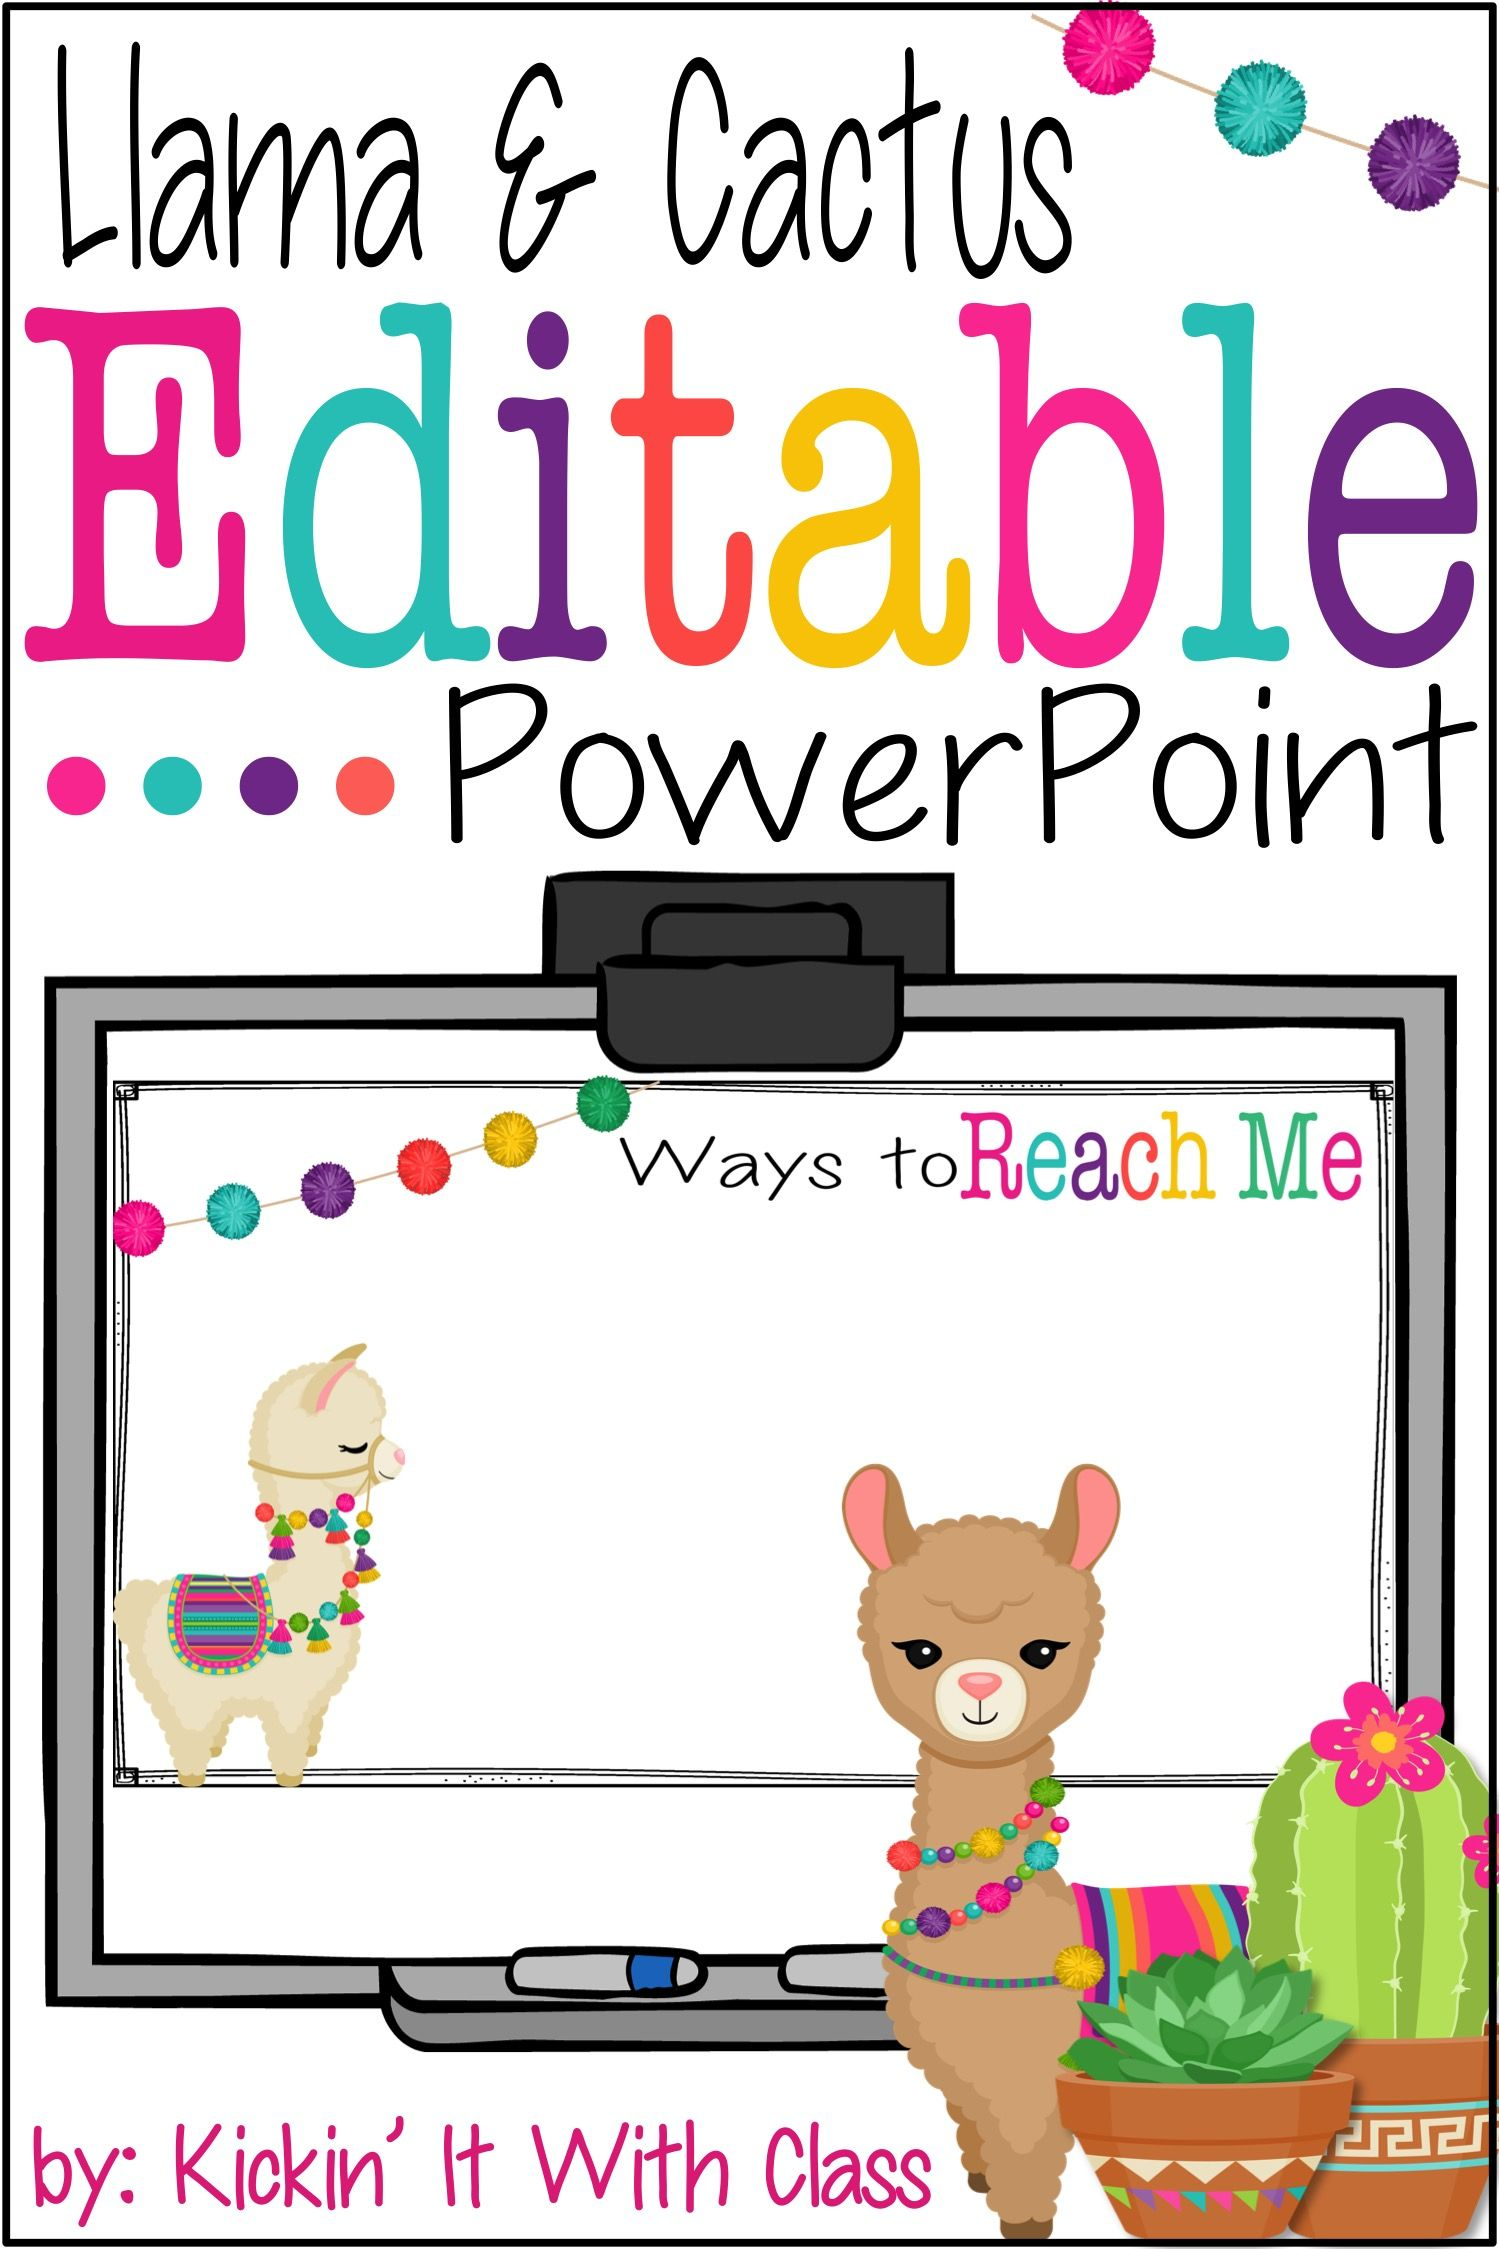 Back To School Editable Powerpoint Cactus Amp Llama